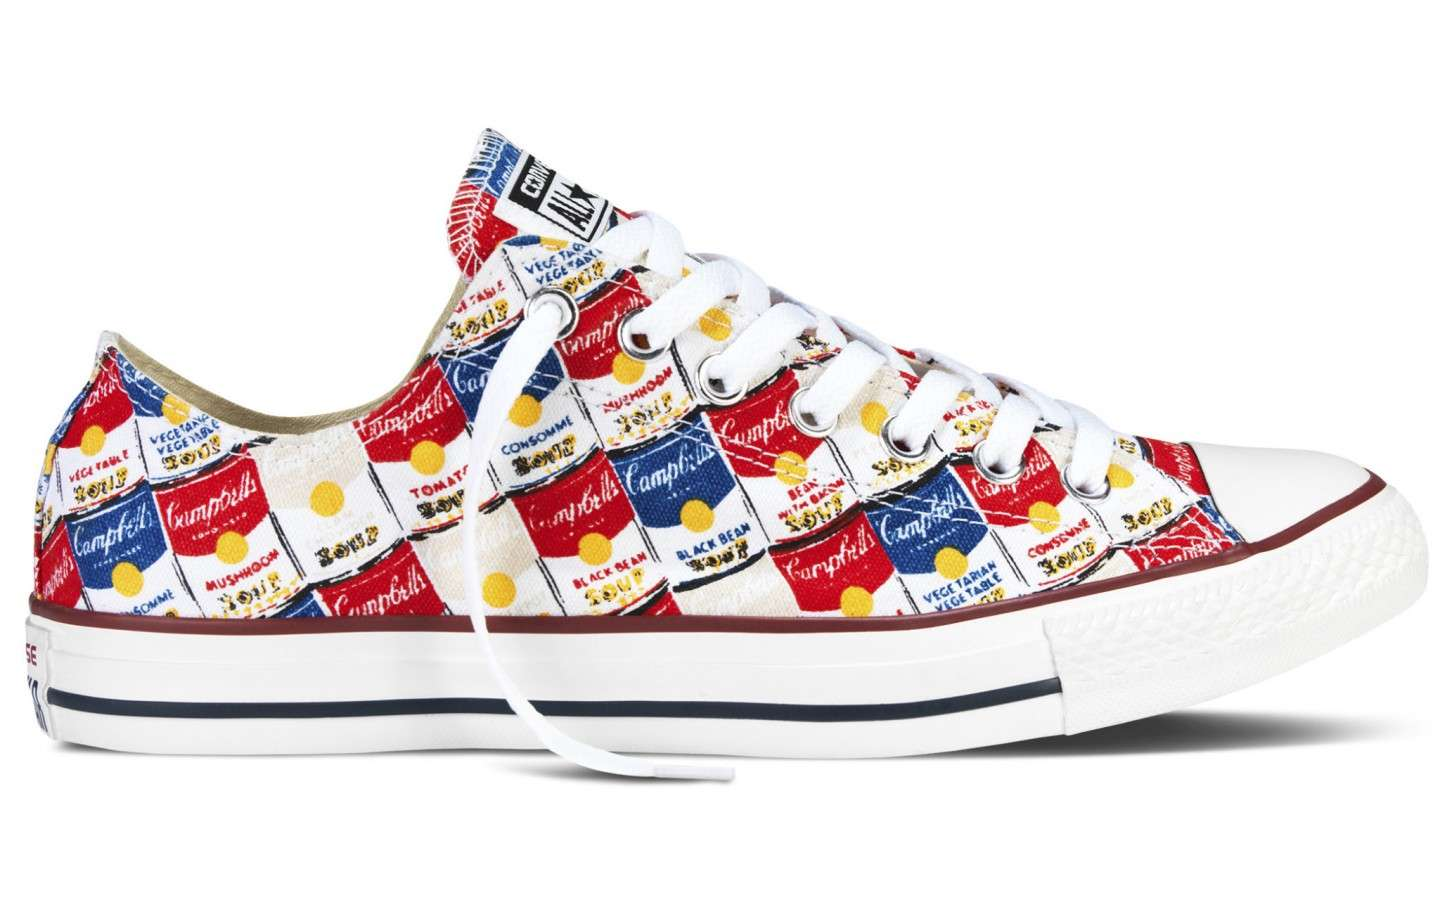 Converse ispirate ad Andy Warhol